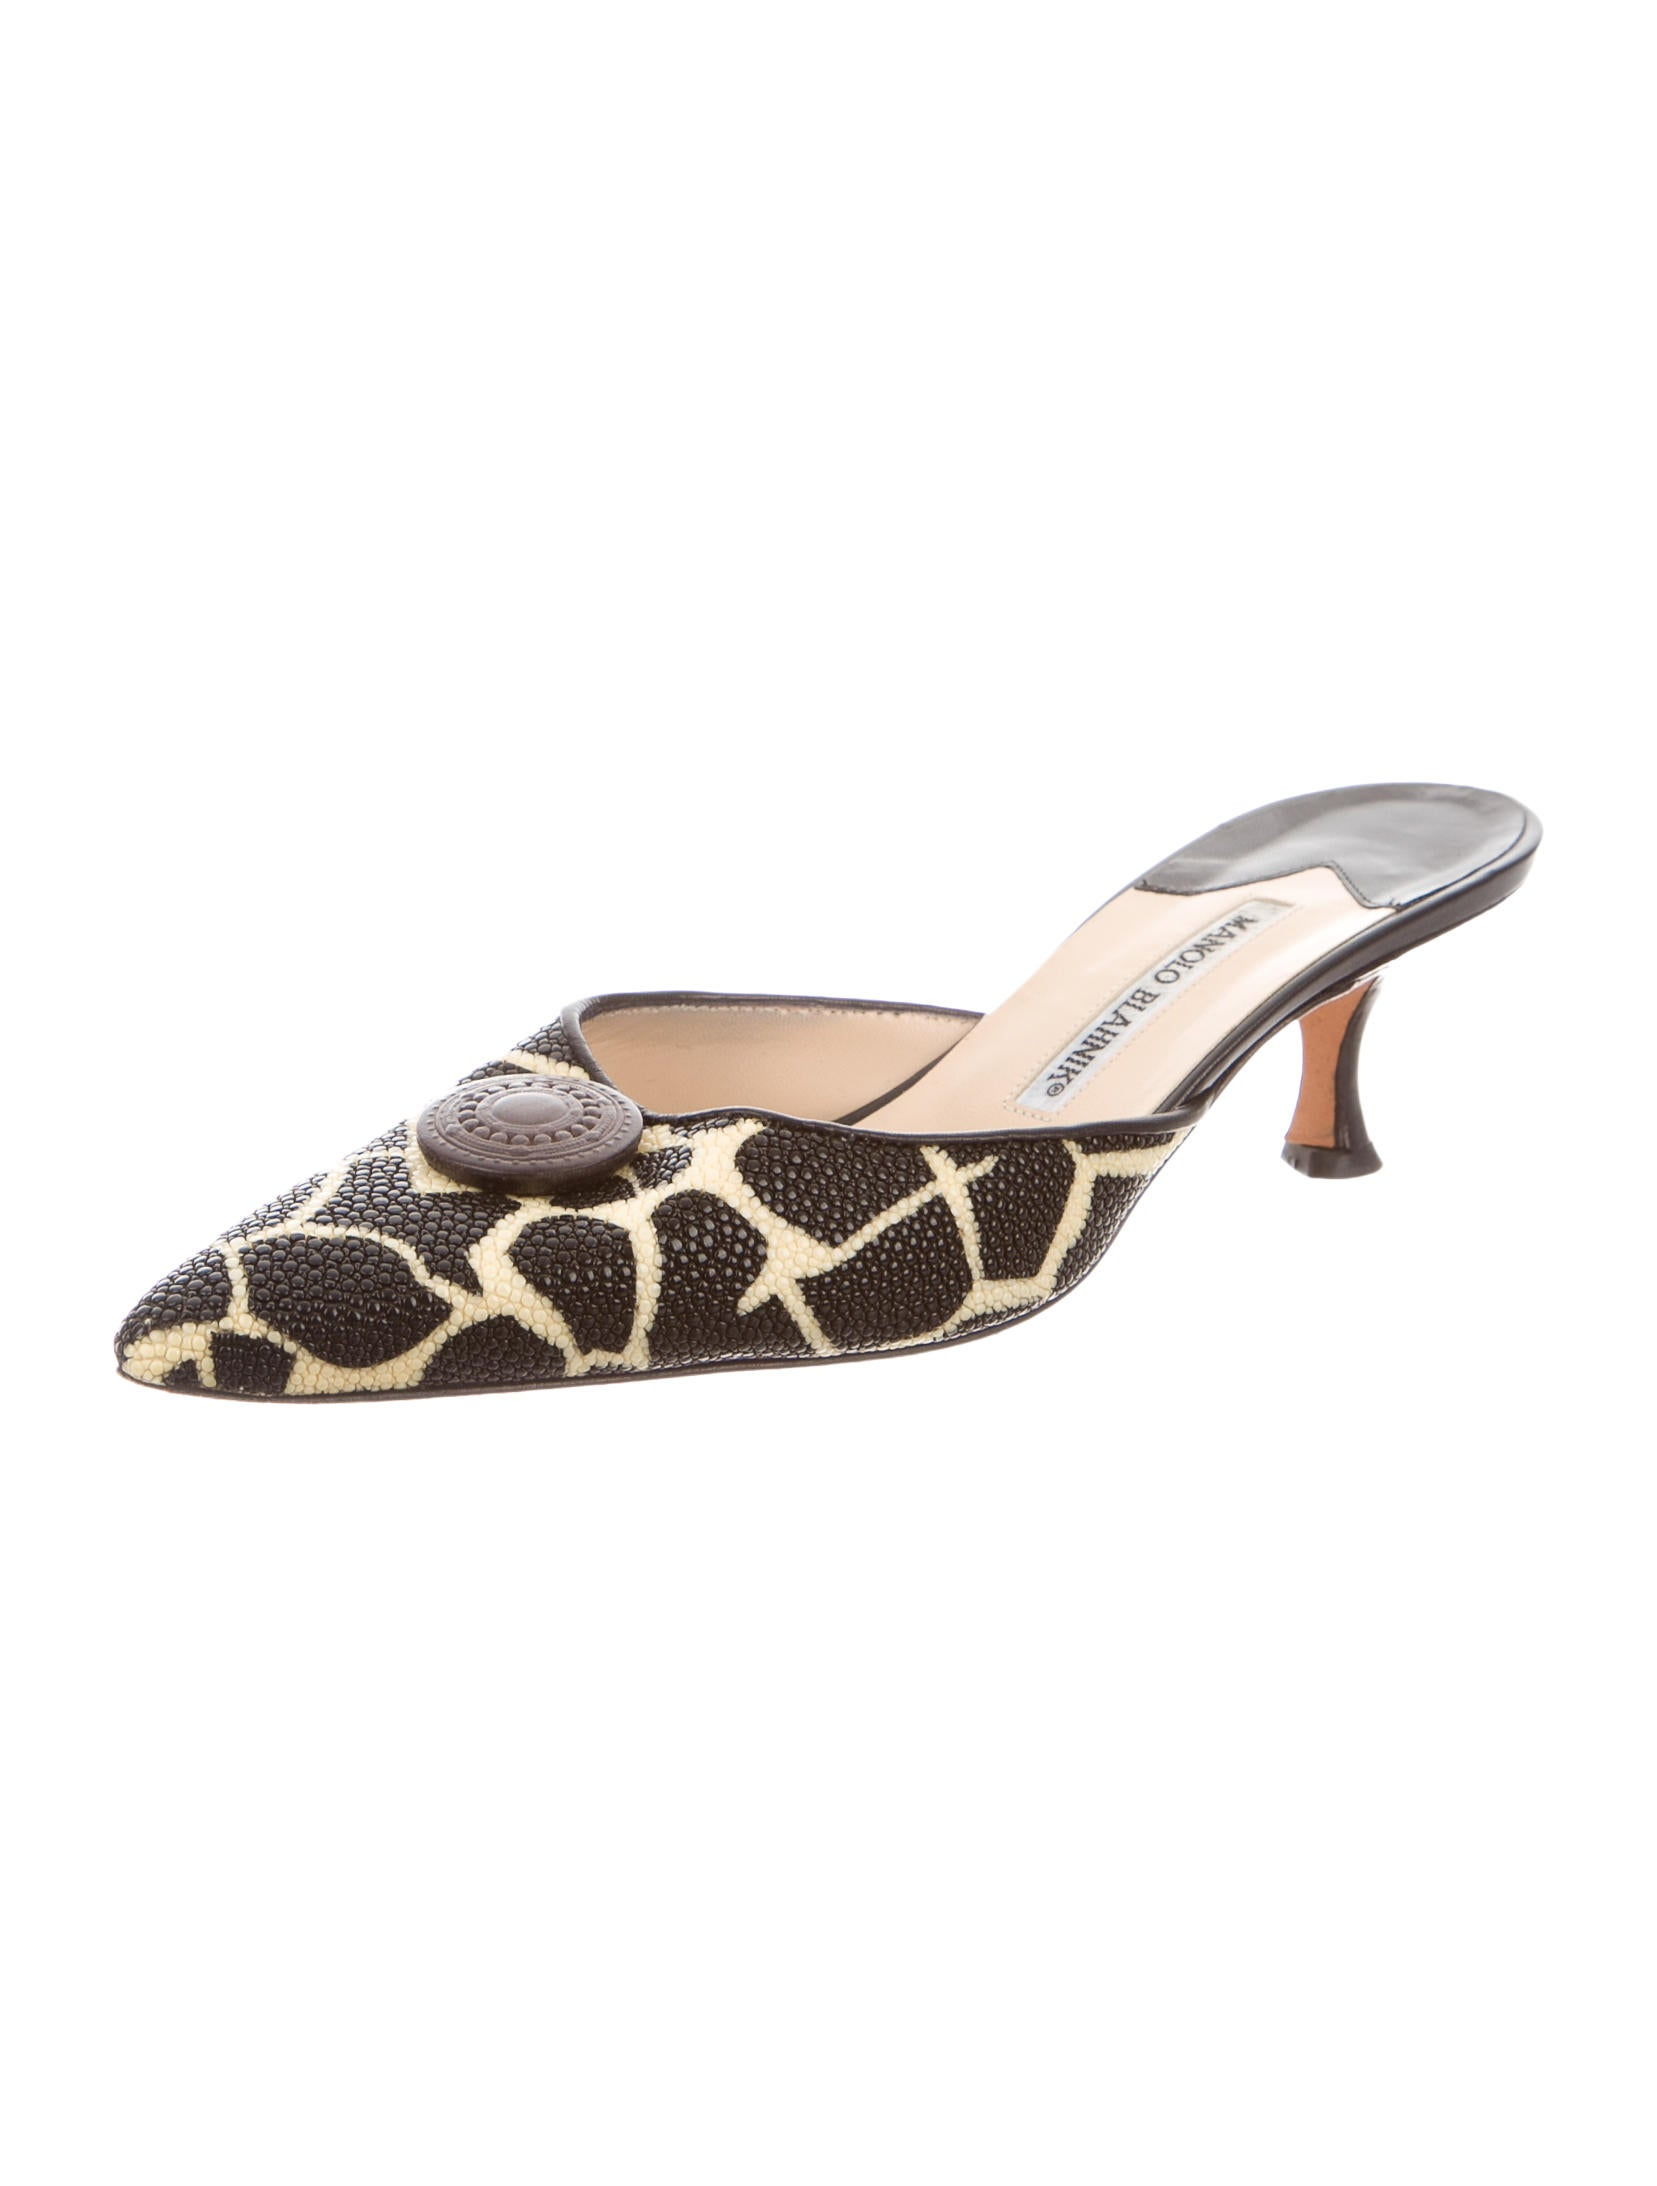 low price fee shipping outlet visit new Manolo Blahnik Stingray Pointed-Toe Mules cheap latest buy cheap 2014 unisex buy online authentic p1iftRg64